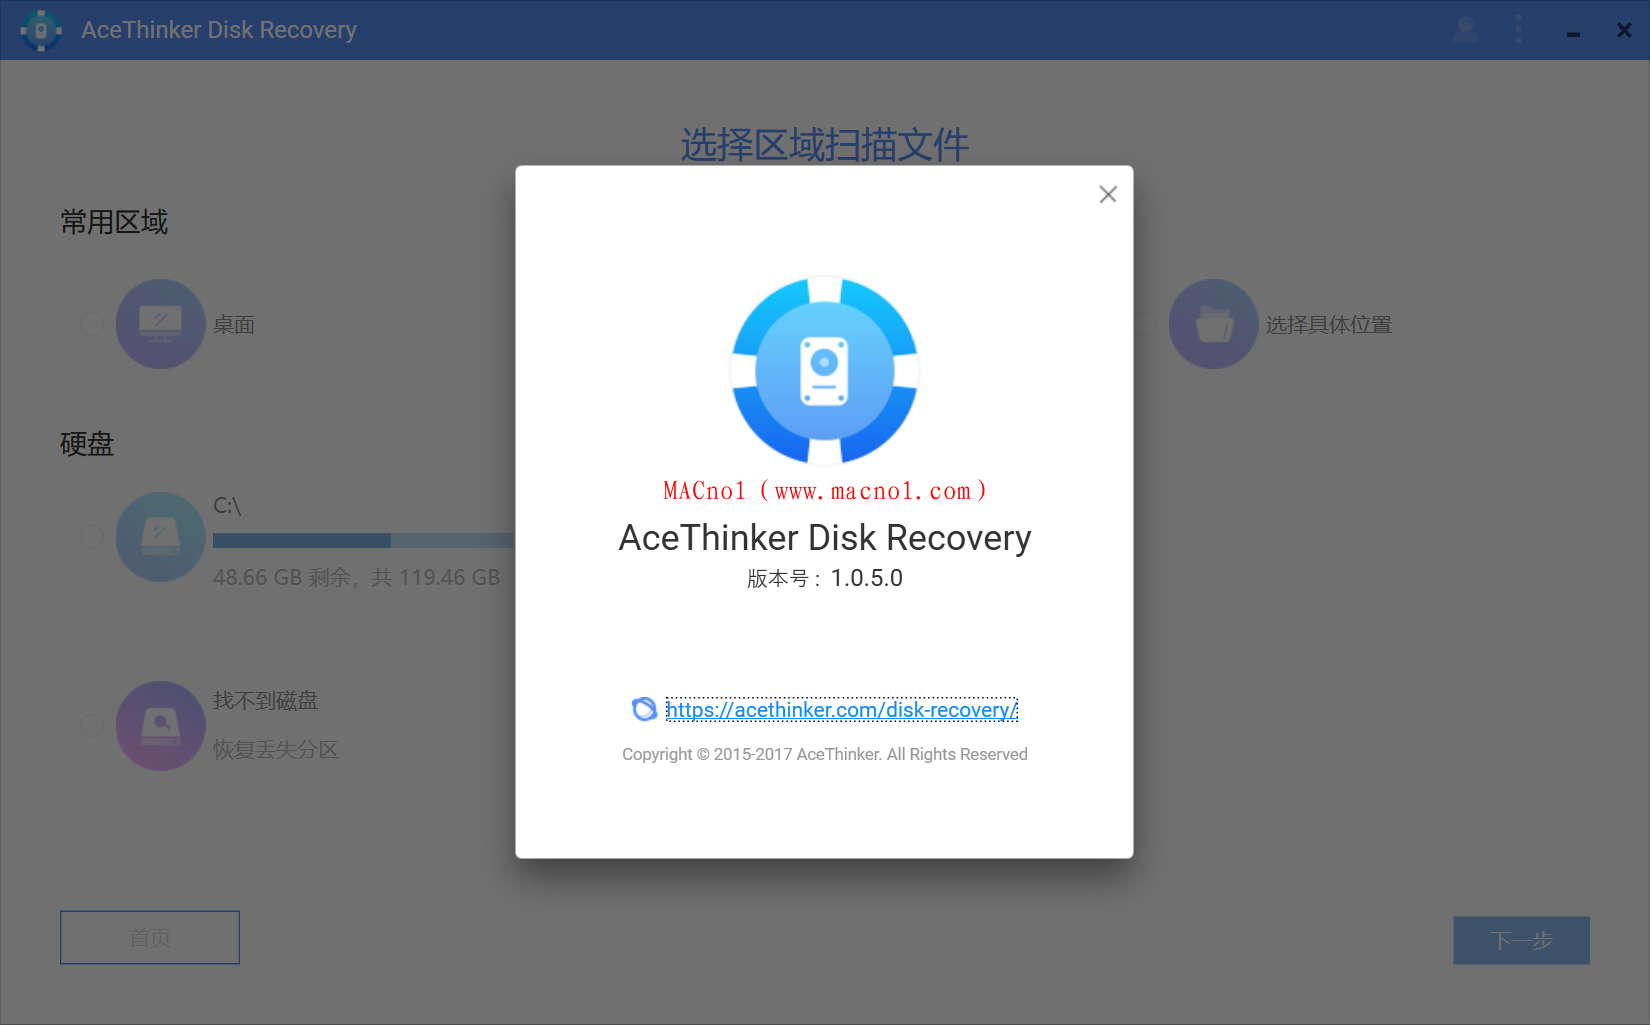 AceThinker Disk Recovery 破解文件.png